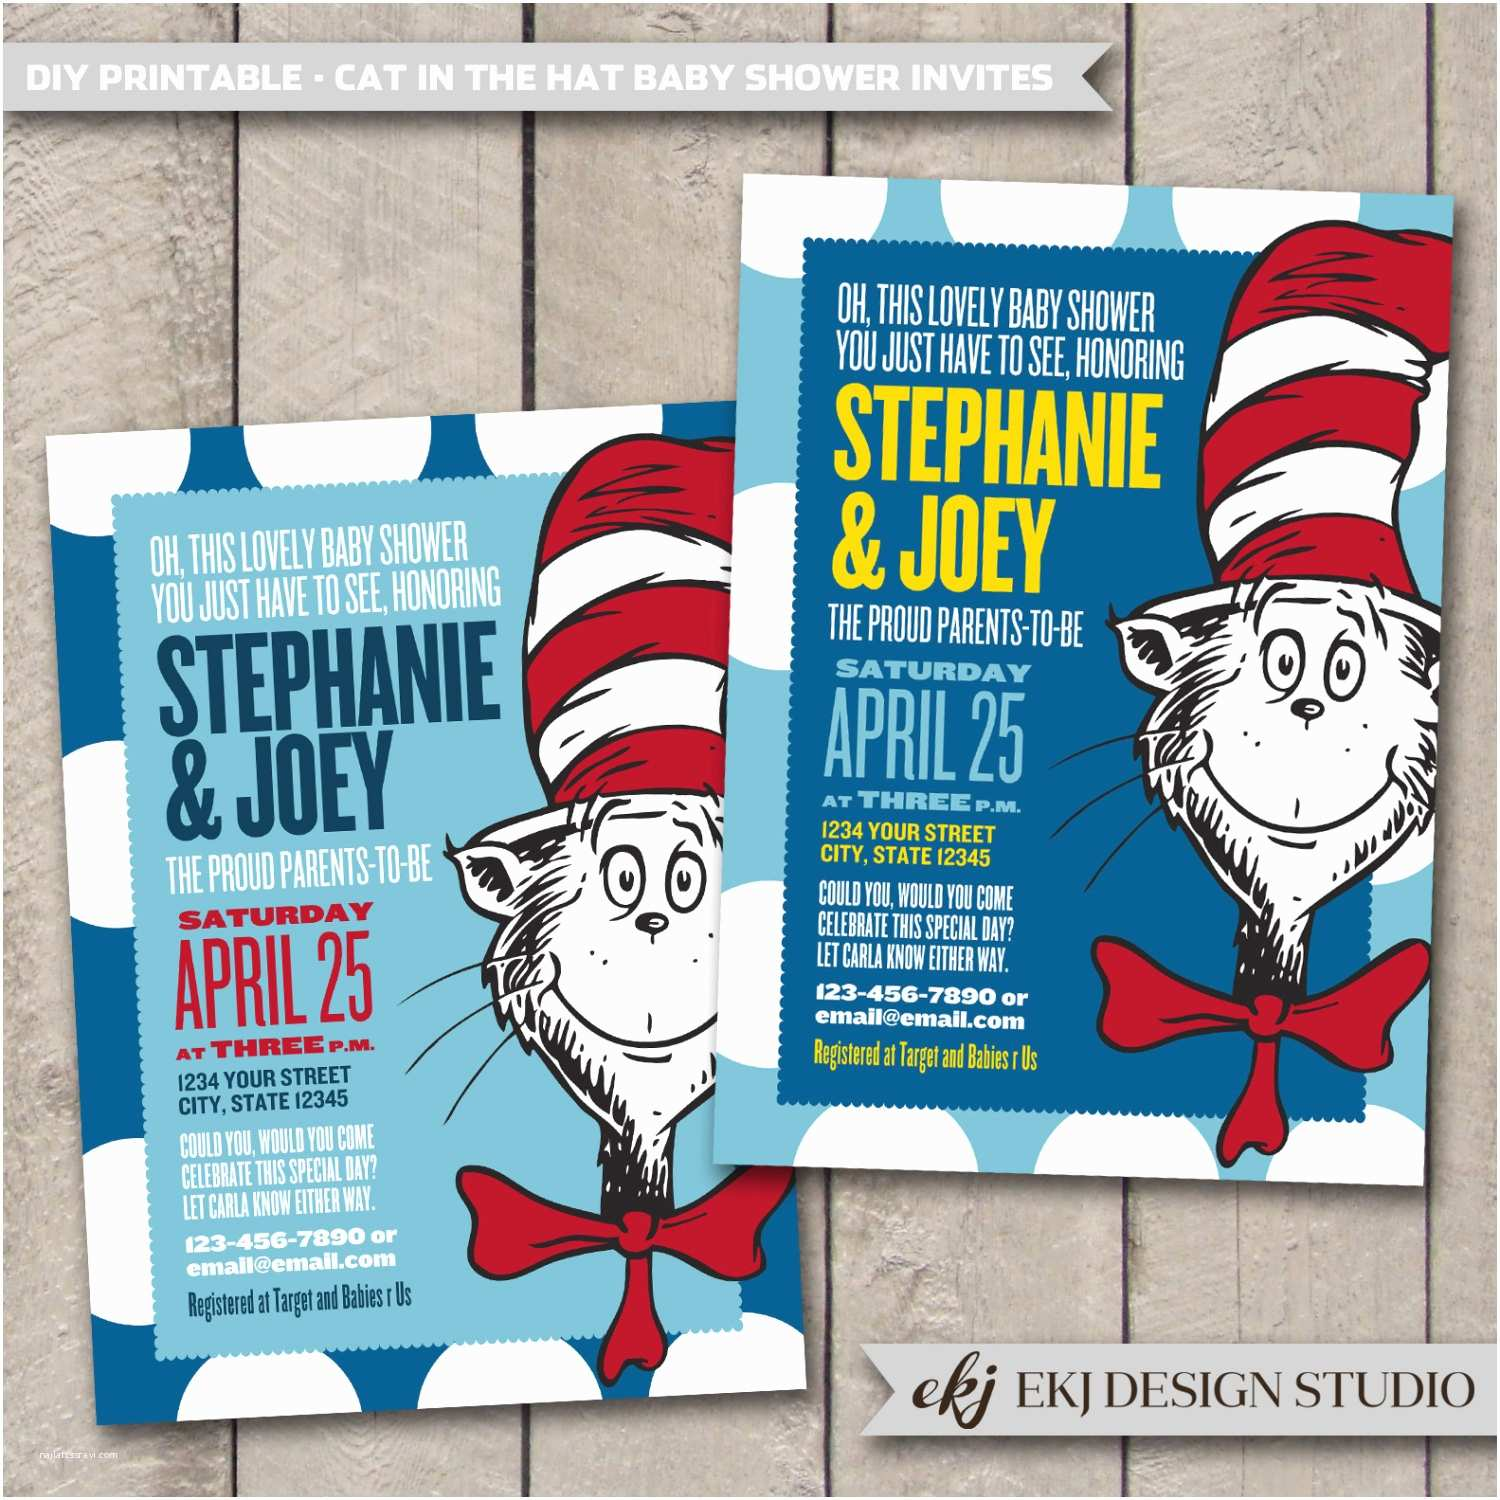 Cat In the Hat Baby Shower Invitations Dr Seuss Cat In the Hat Baby Shower Invitation Diy